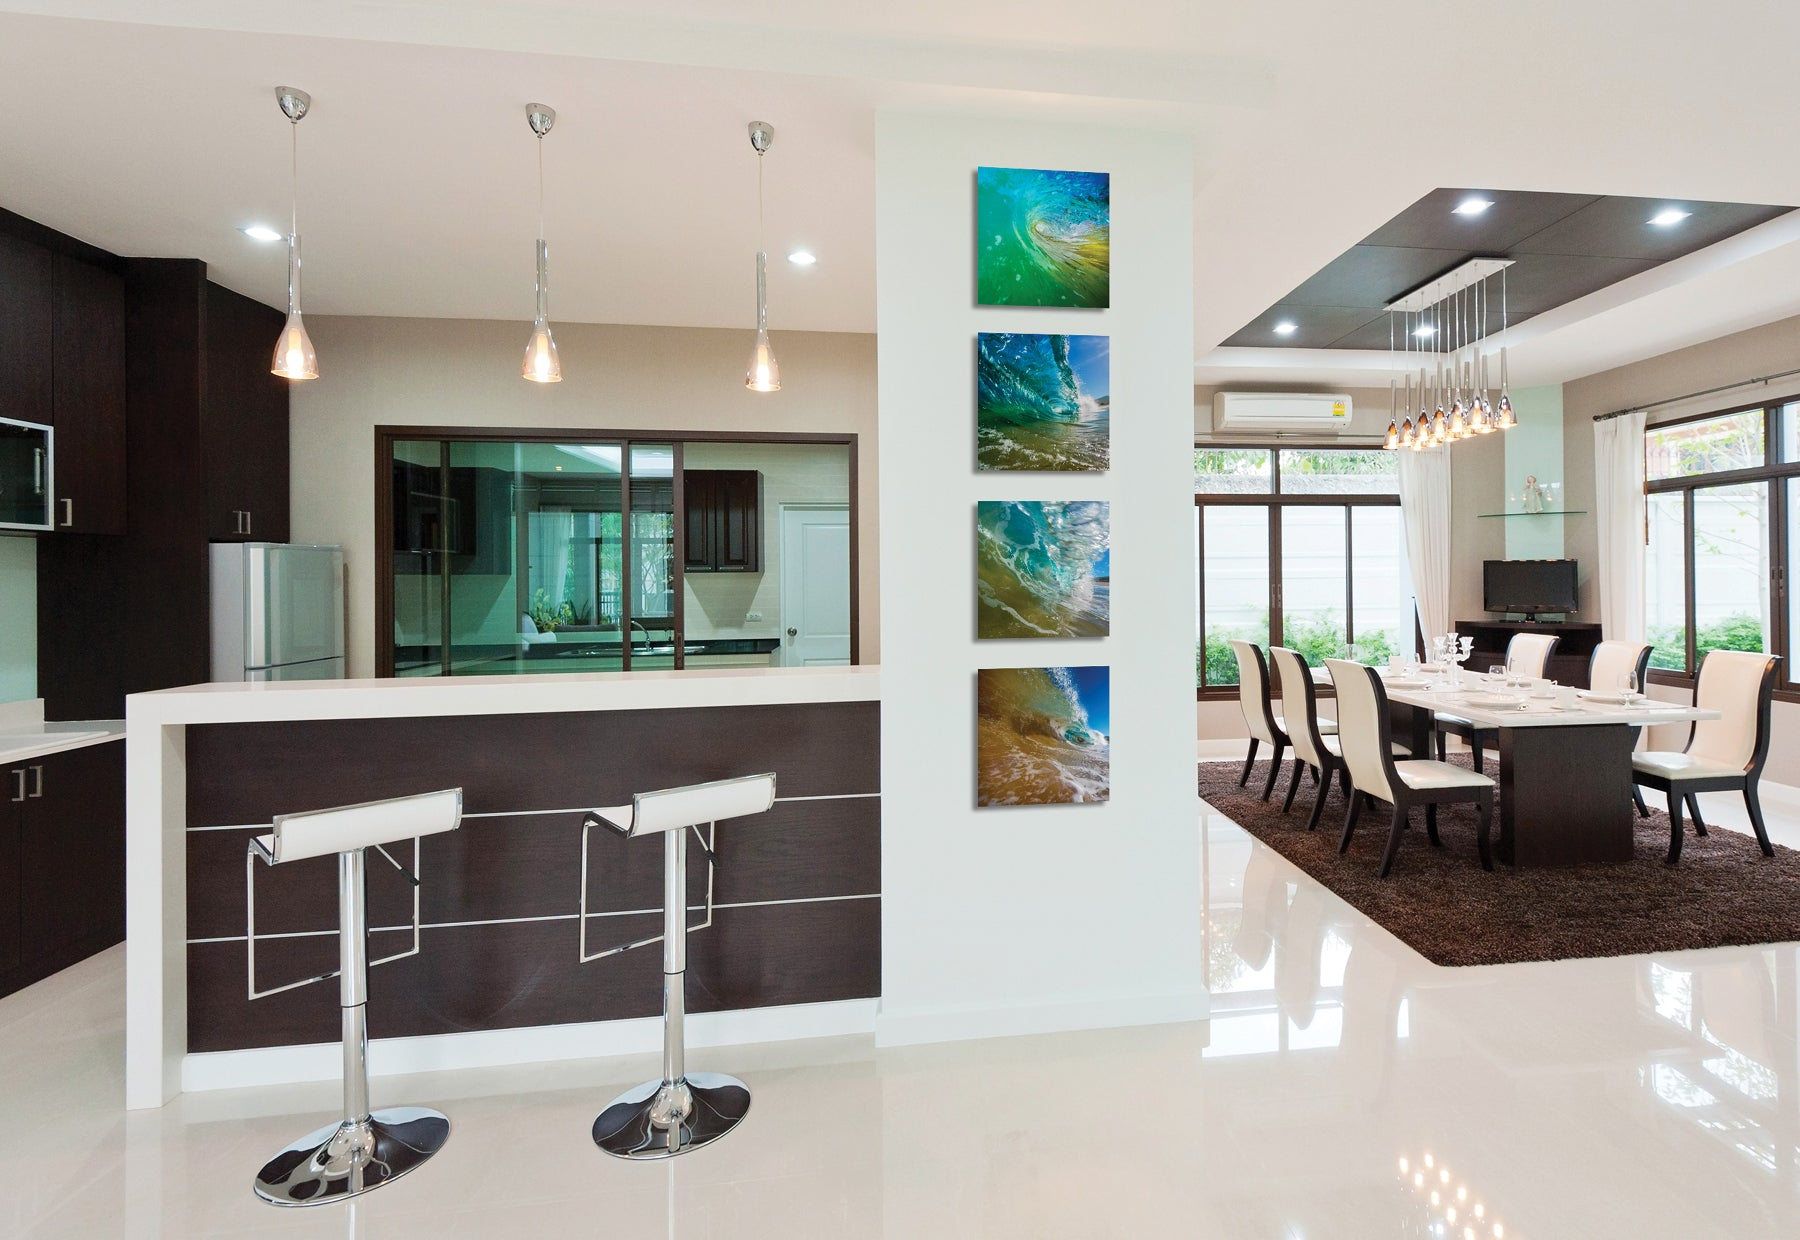 Modern kitchen and dining interior featuring four square photographs of ocean waves by Peter Lik hanging next to bartop